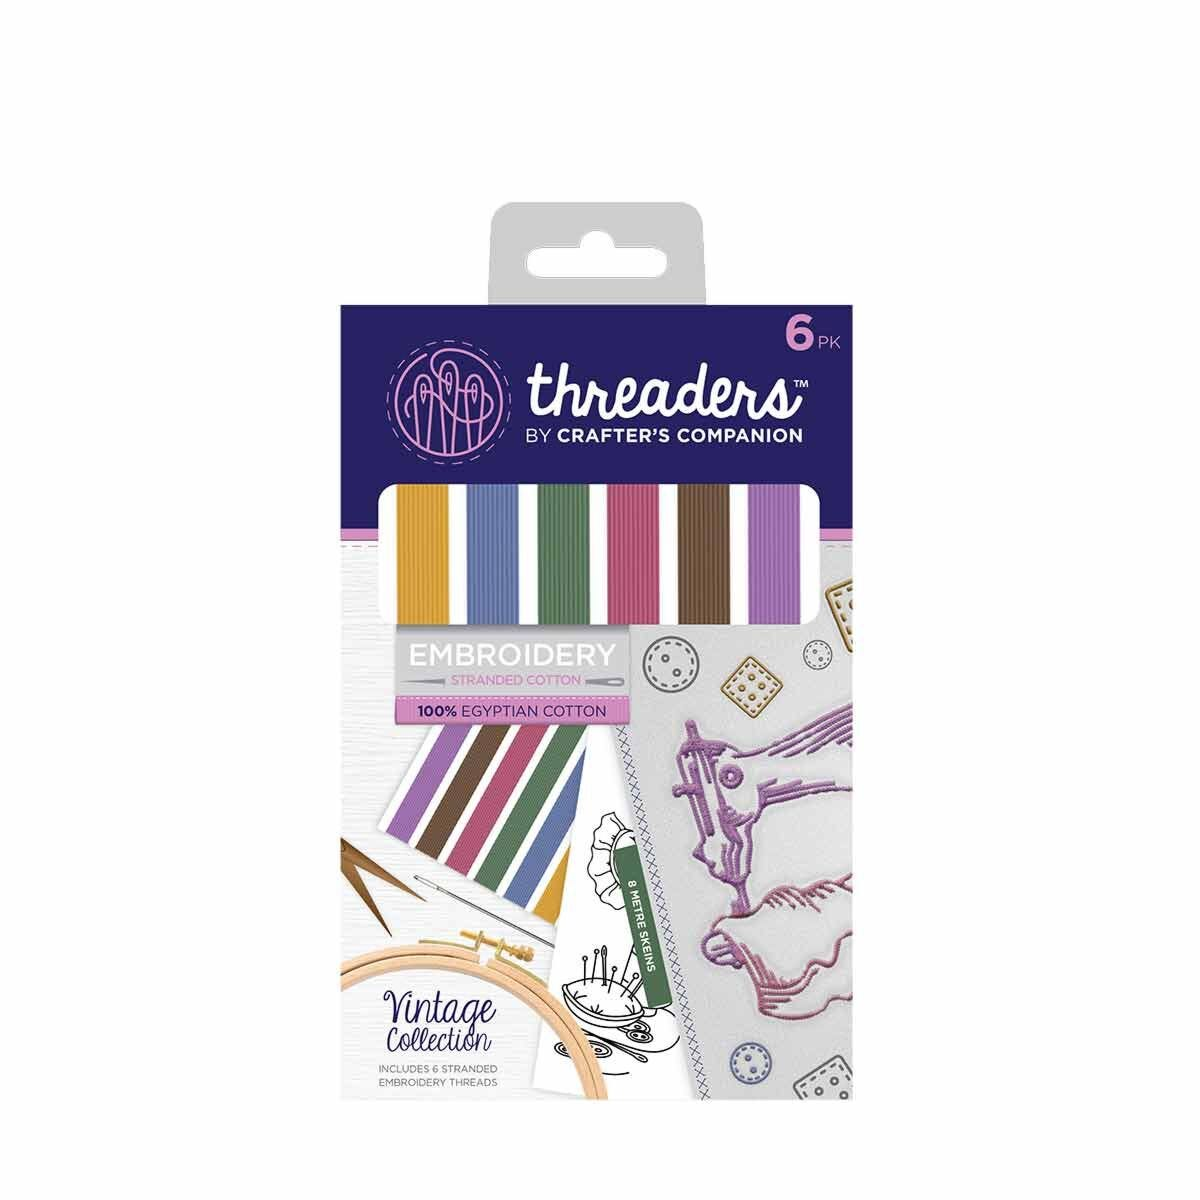 Crafters Companion Threaders Stranded Embroidery Cotton Vintage